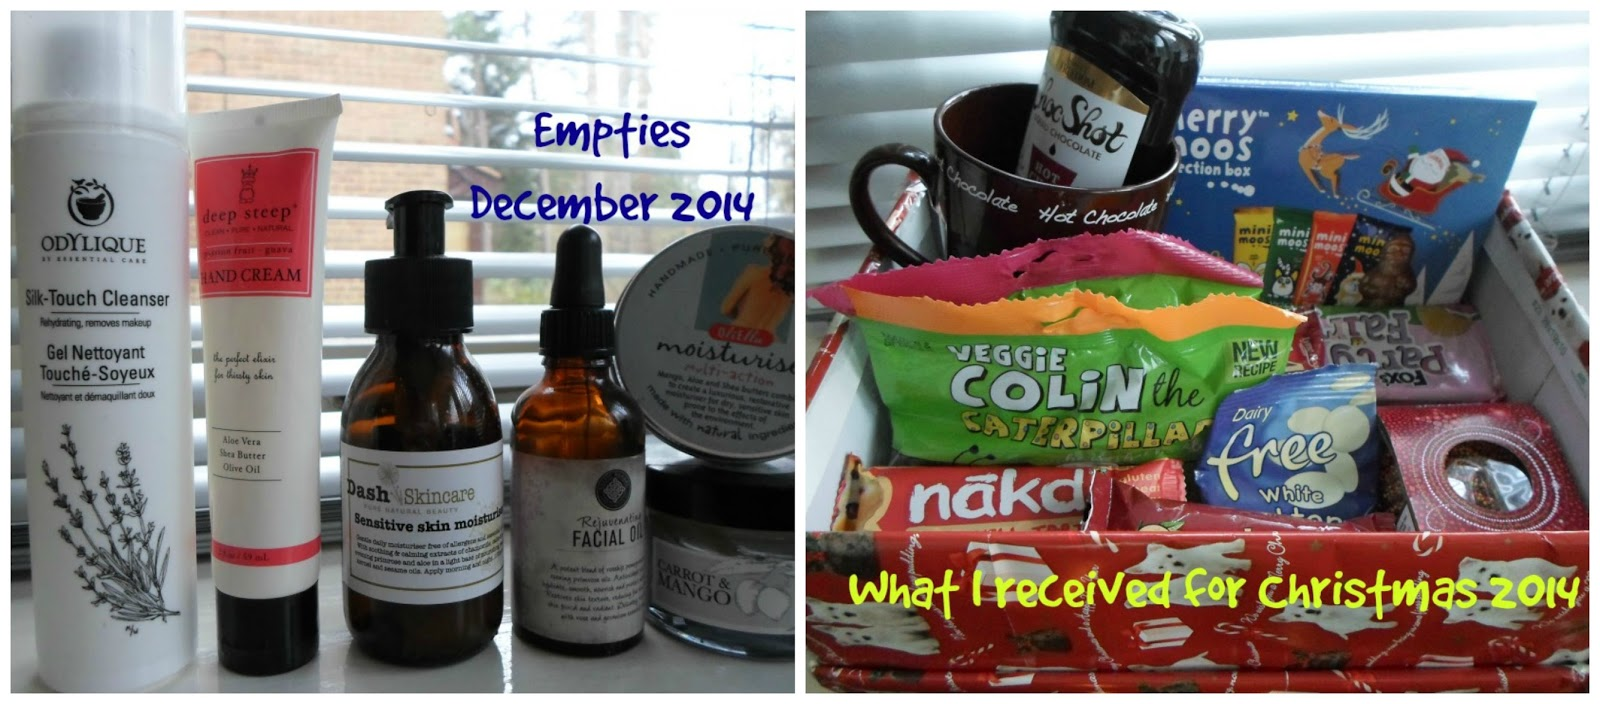 Sugarpuffish December Empties & Christmas Gift Videos